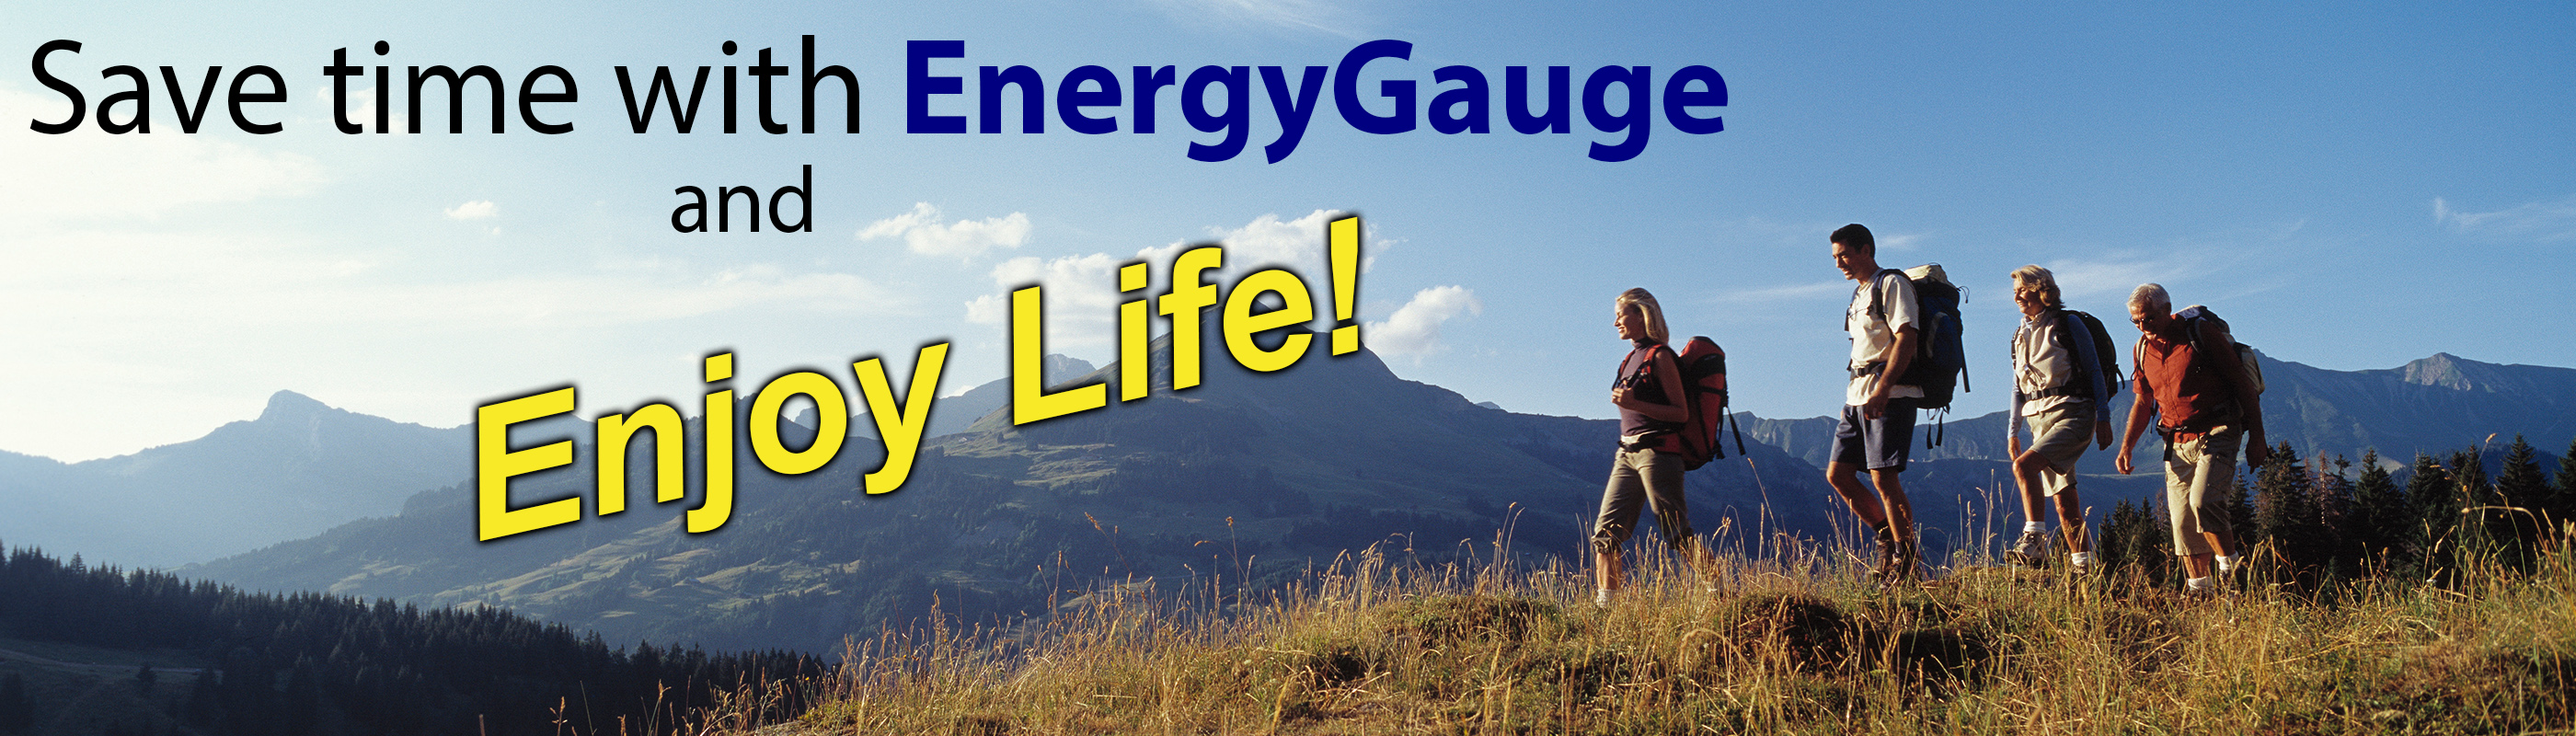 Save time with EnergyGauge